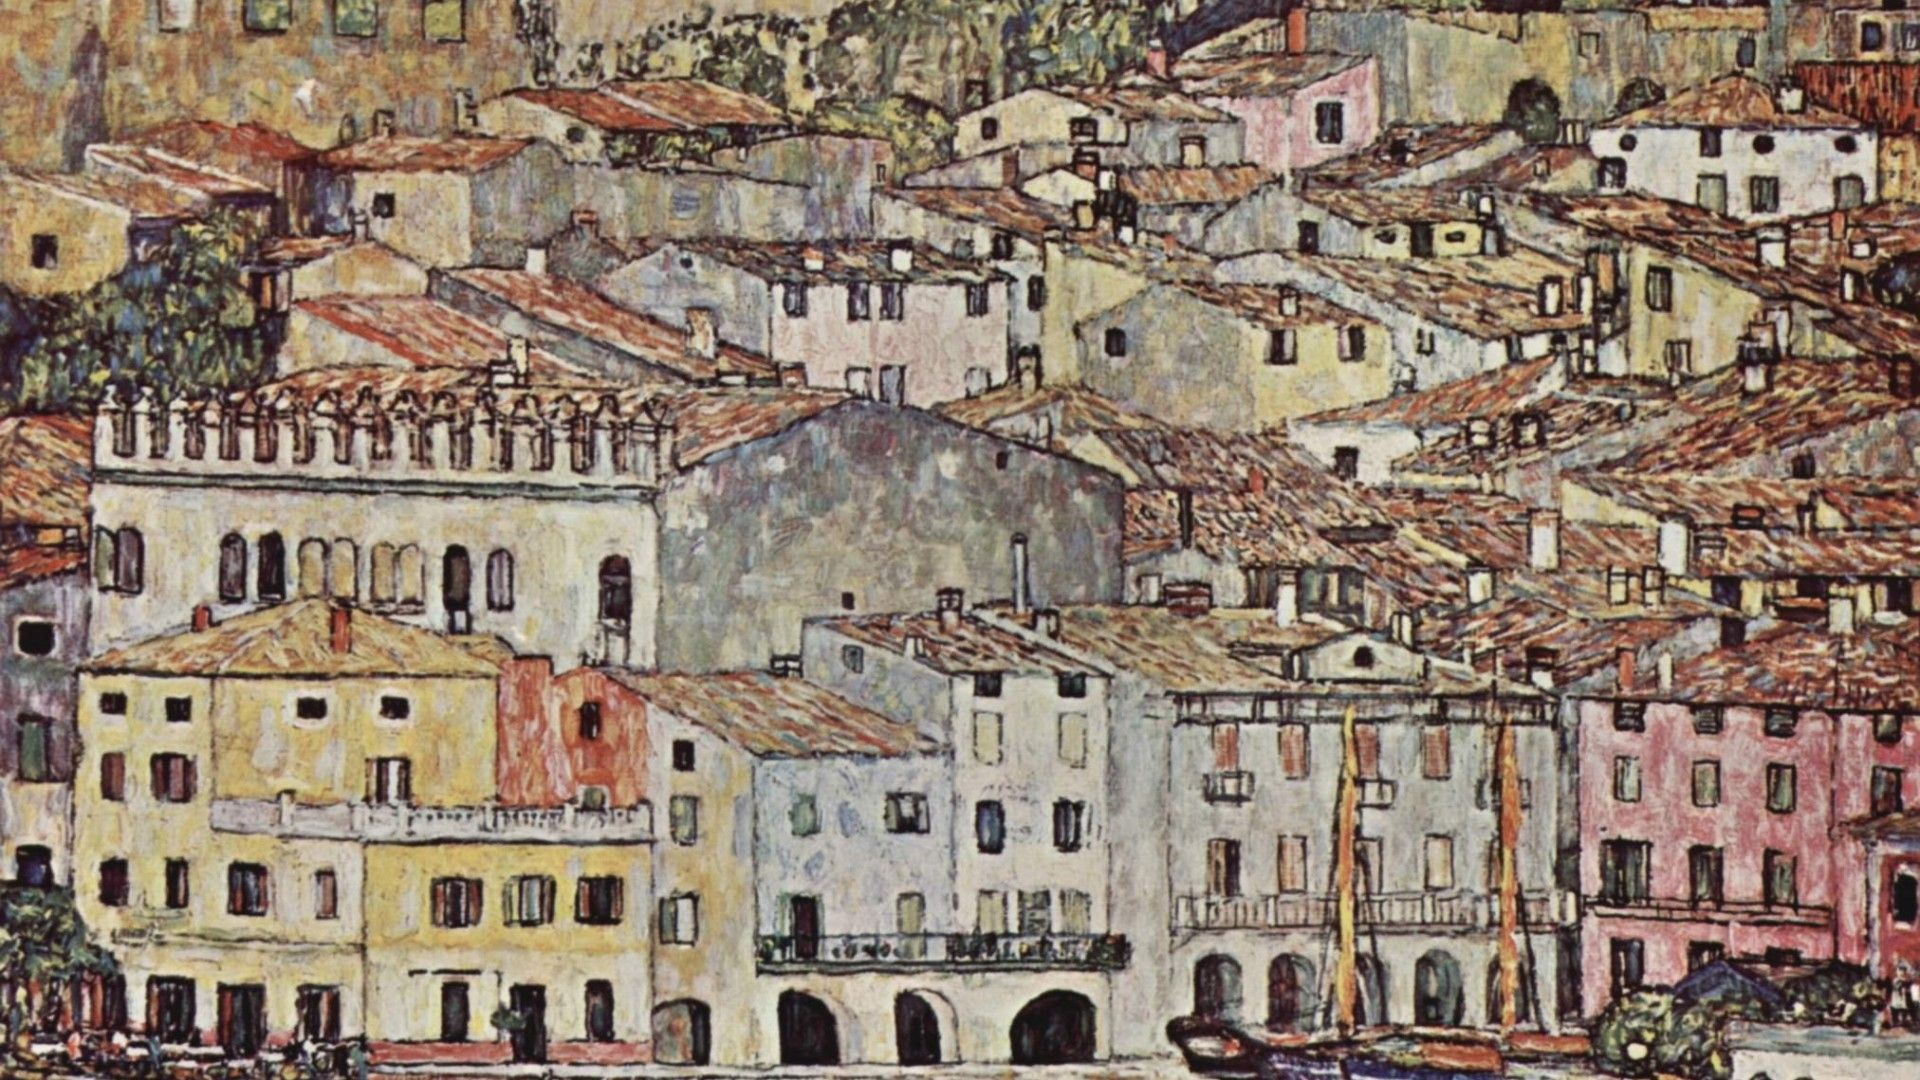 1920x1080 Painting of Gustav Klimt - City wallpapers and images ...